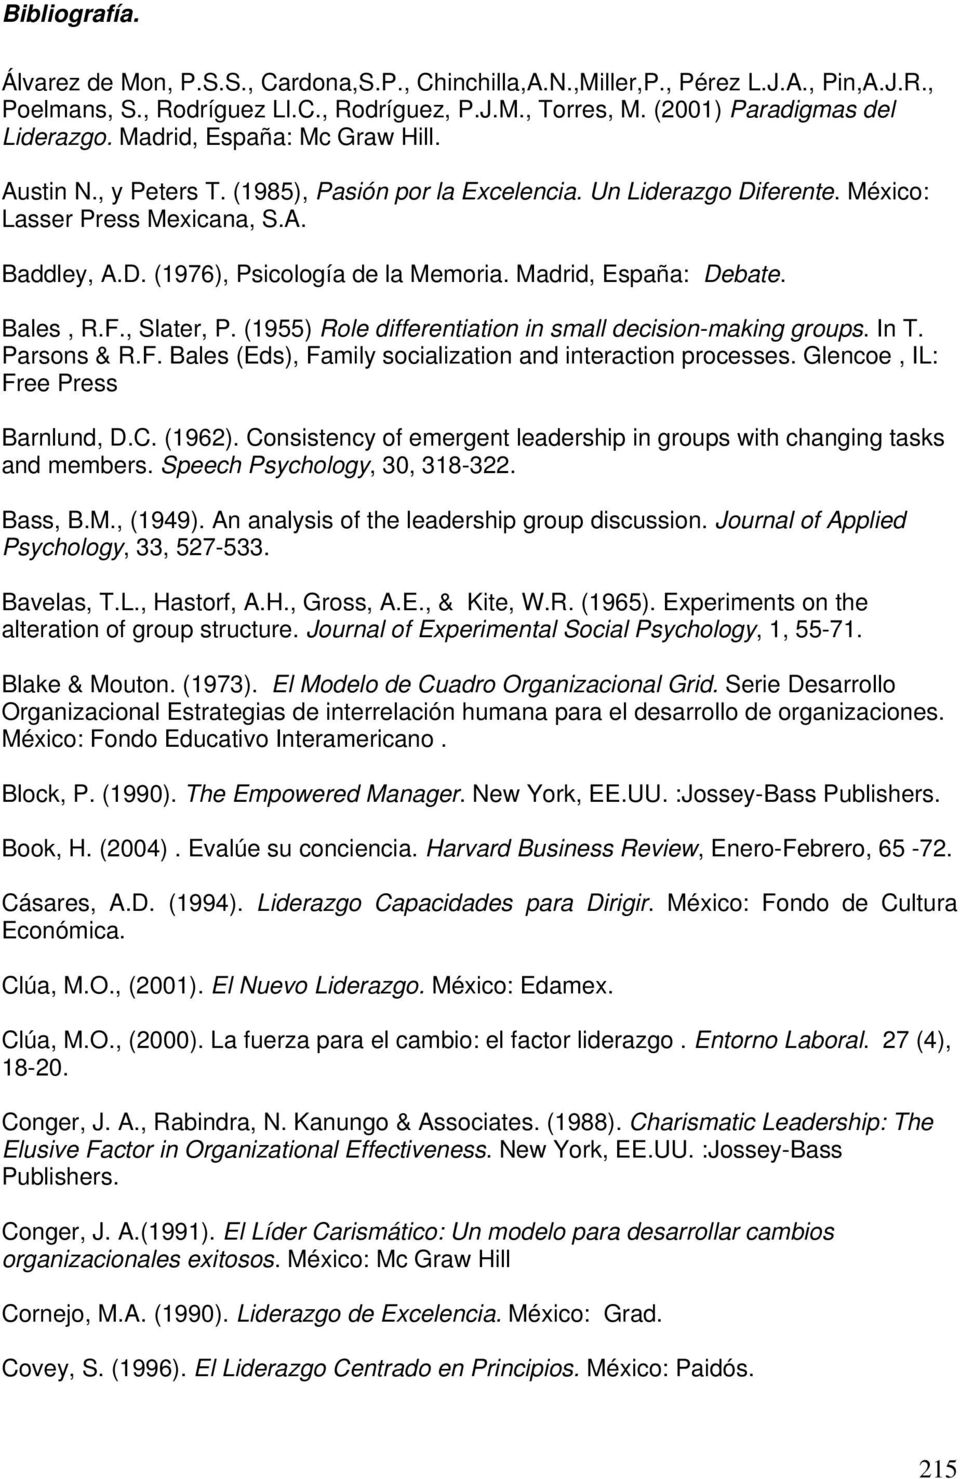 Madrid, España: Debate. Bales, R.F., Slater, P. (1955) Role differentiation in small decision-making groups. In T. Parsons & R.F. Bales (Eds), Family socialization and interaction processes.